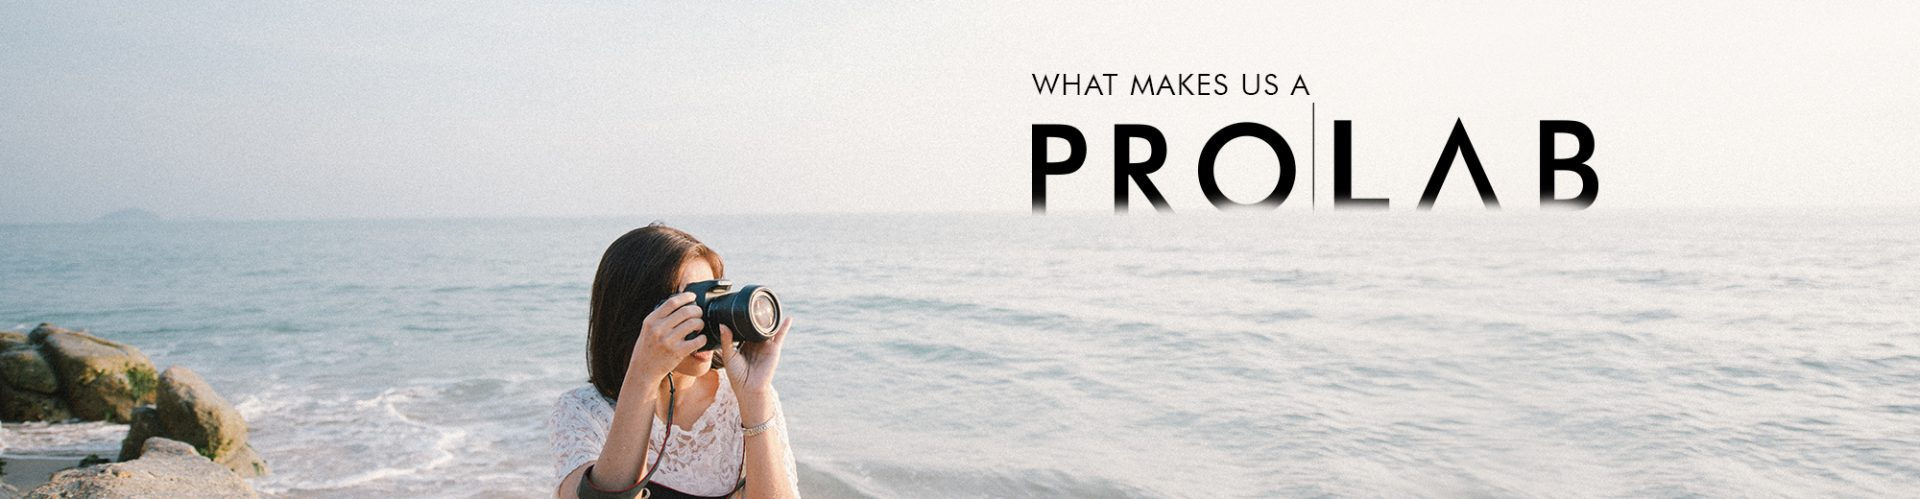 what makes us a prolab banner